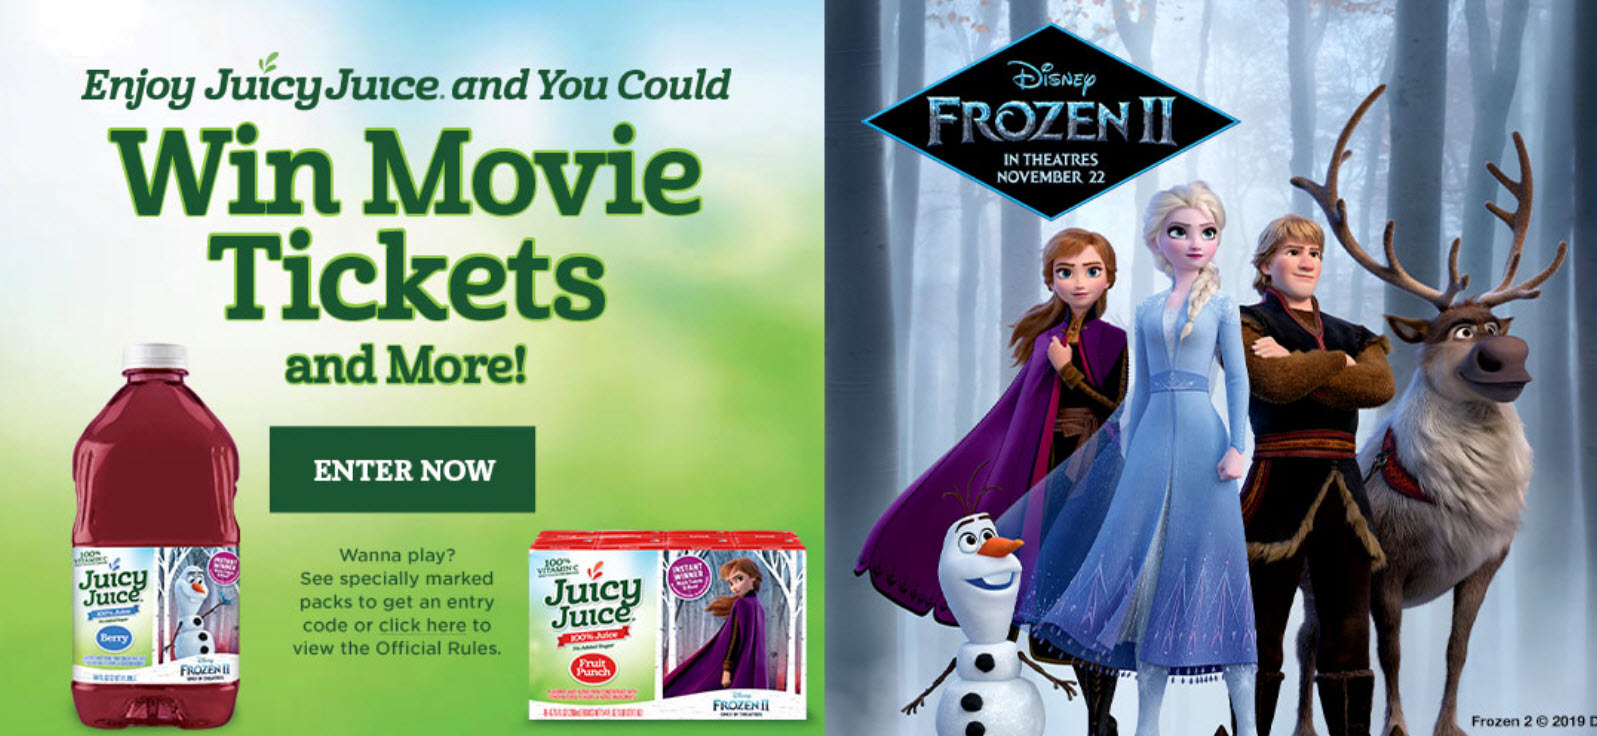 13,052,258 WINNERS! Play the Juicy Juice Movie Tickets and More Instant Win Game for your chance to win